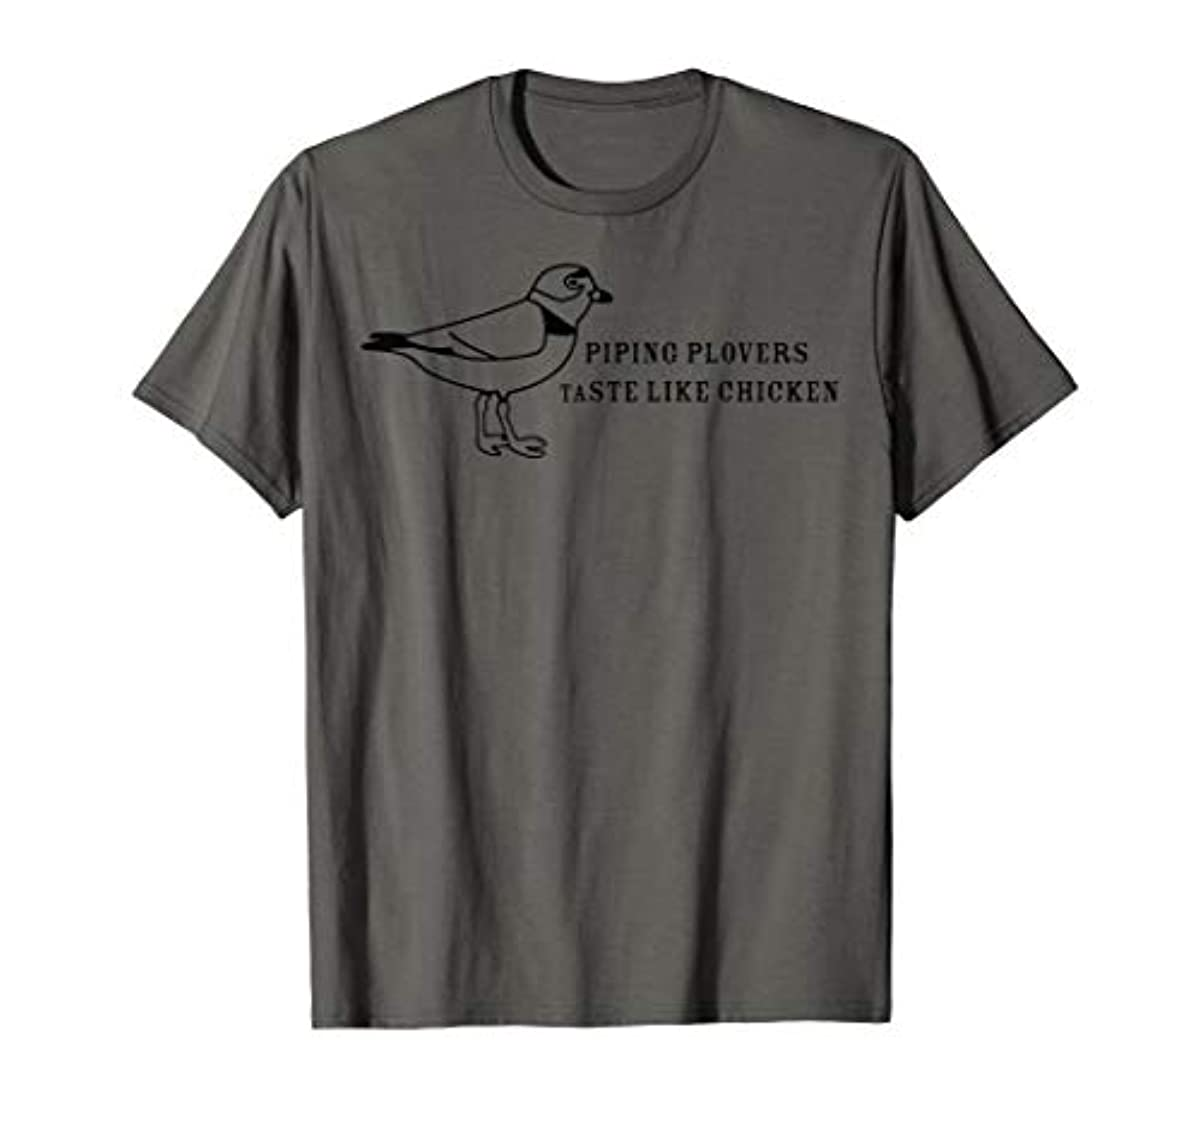 Piping Plovers Taste Like Chicken T-Shirt